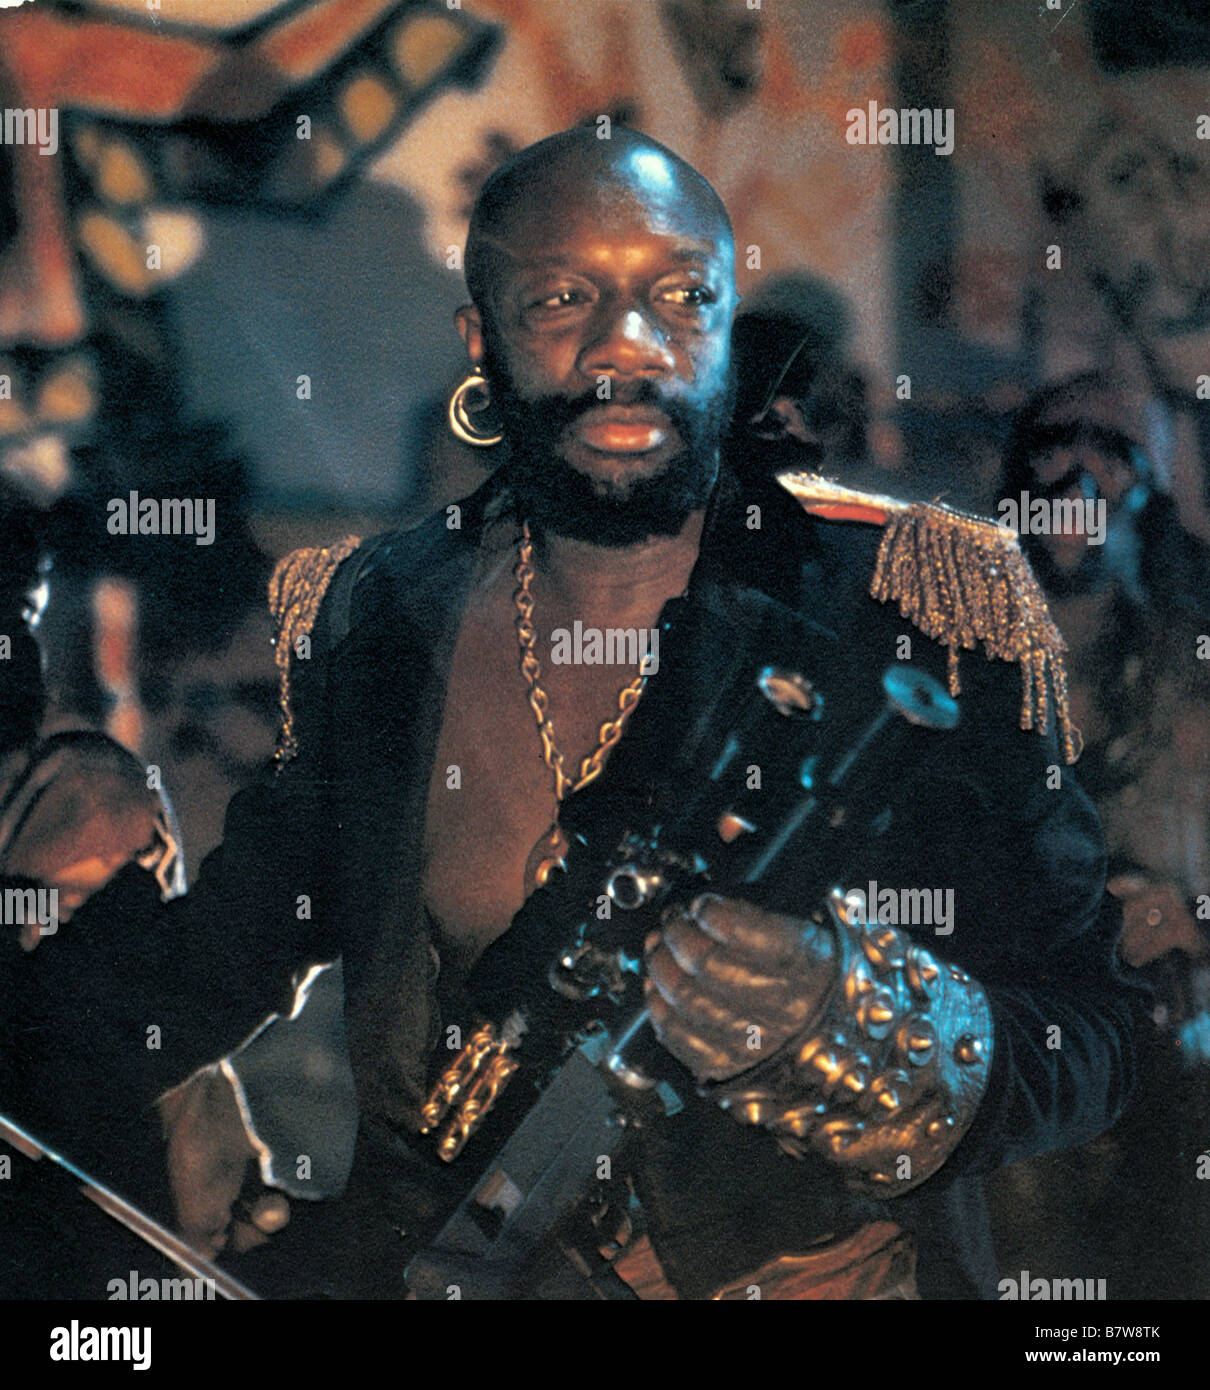 Isaac Hayes Movies And Tv Shows Simple isaac hayes escape from new stock photos & isaac hayes escape from